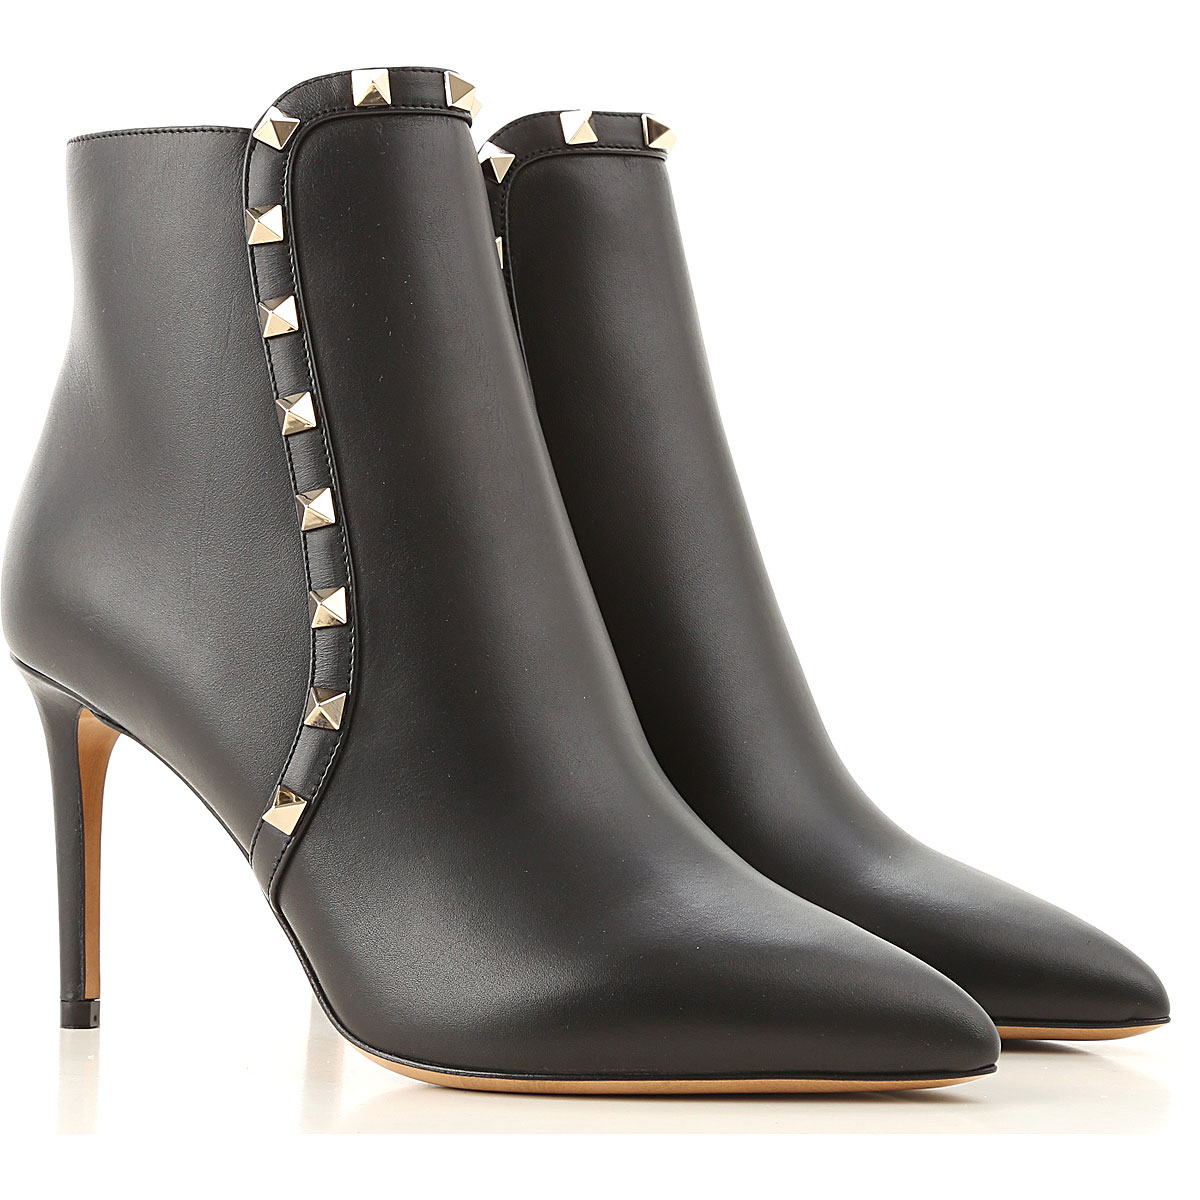 Valentino Garavani Boots for Women, Booties On Sale, Black, Leather, 2019, 10 5 6